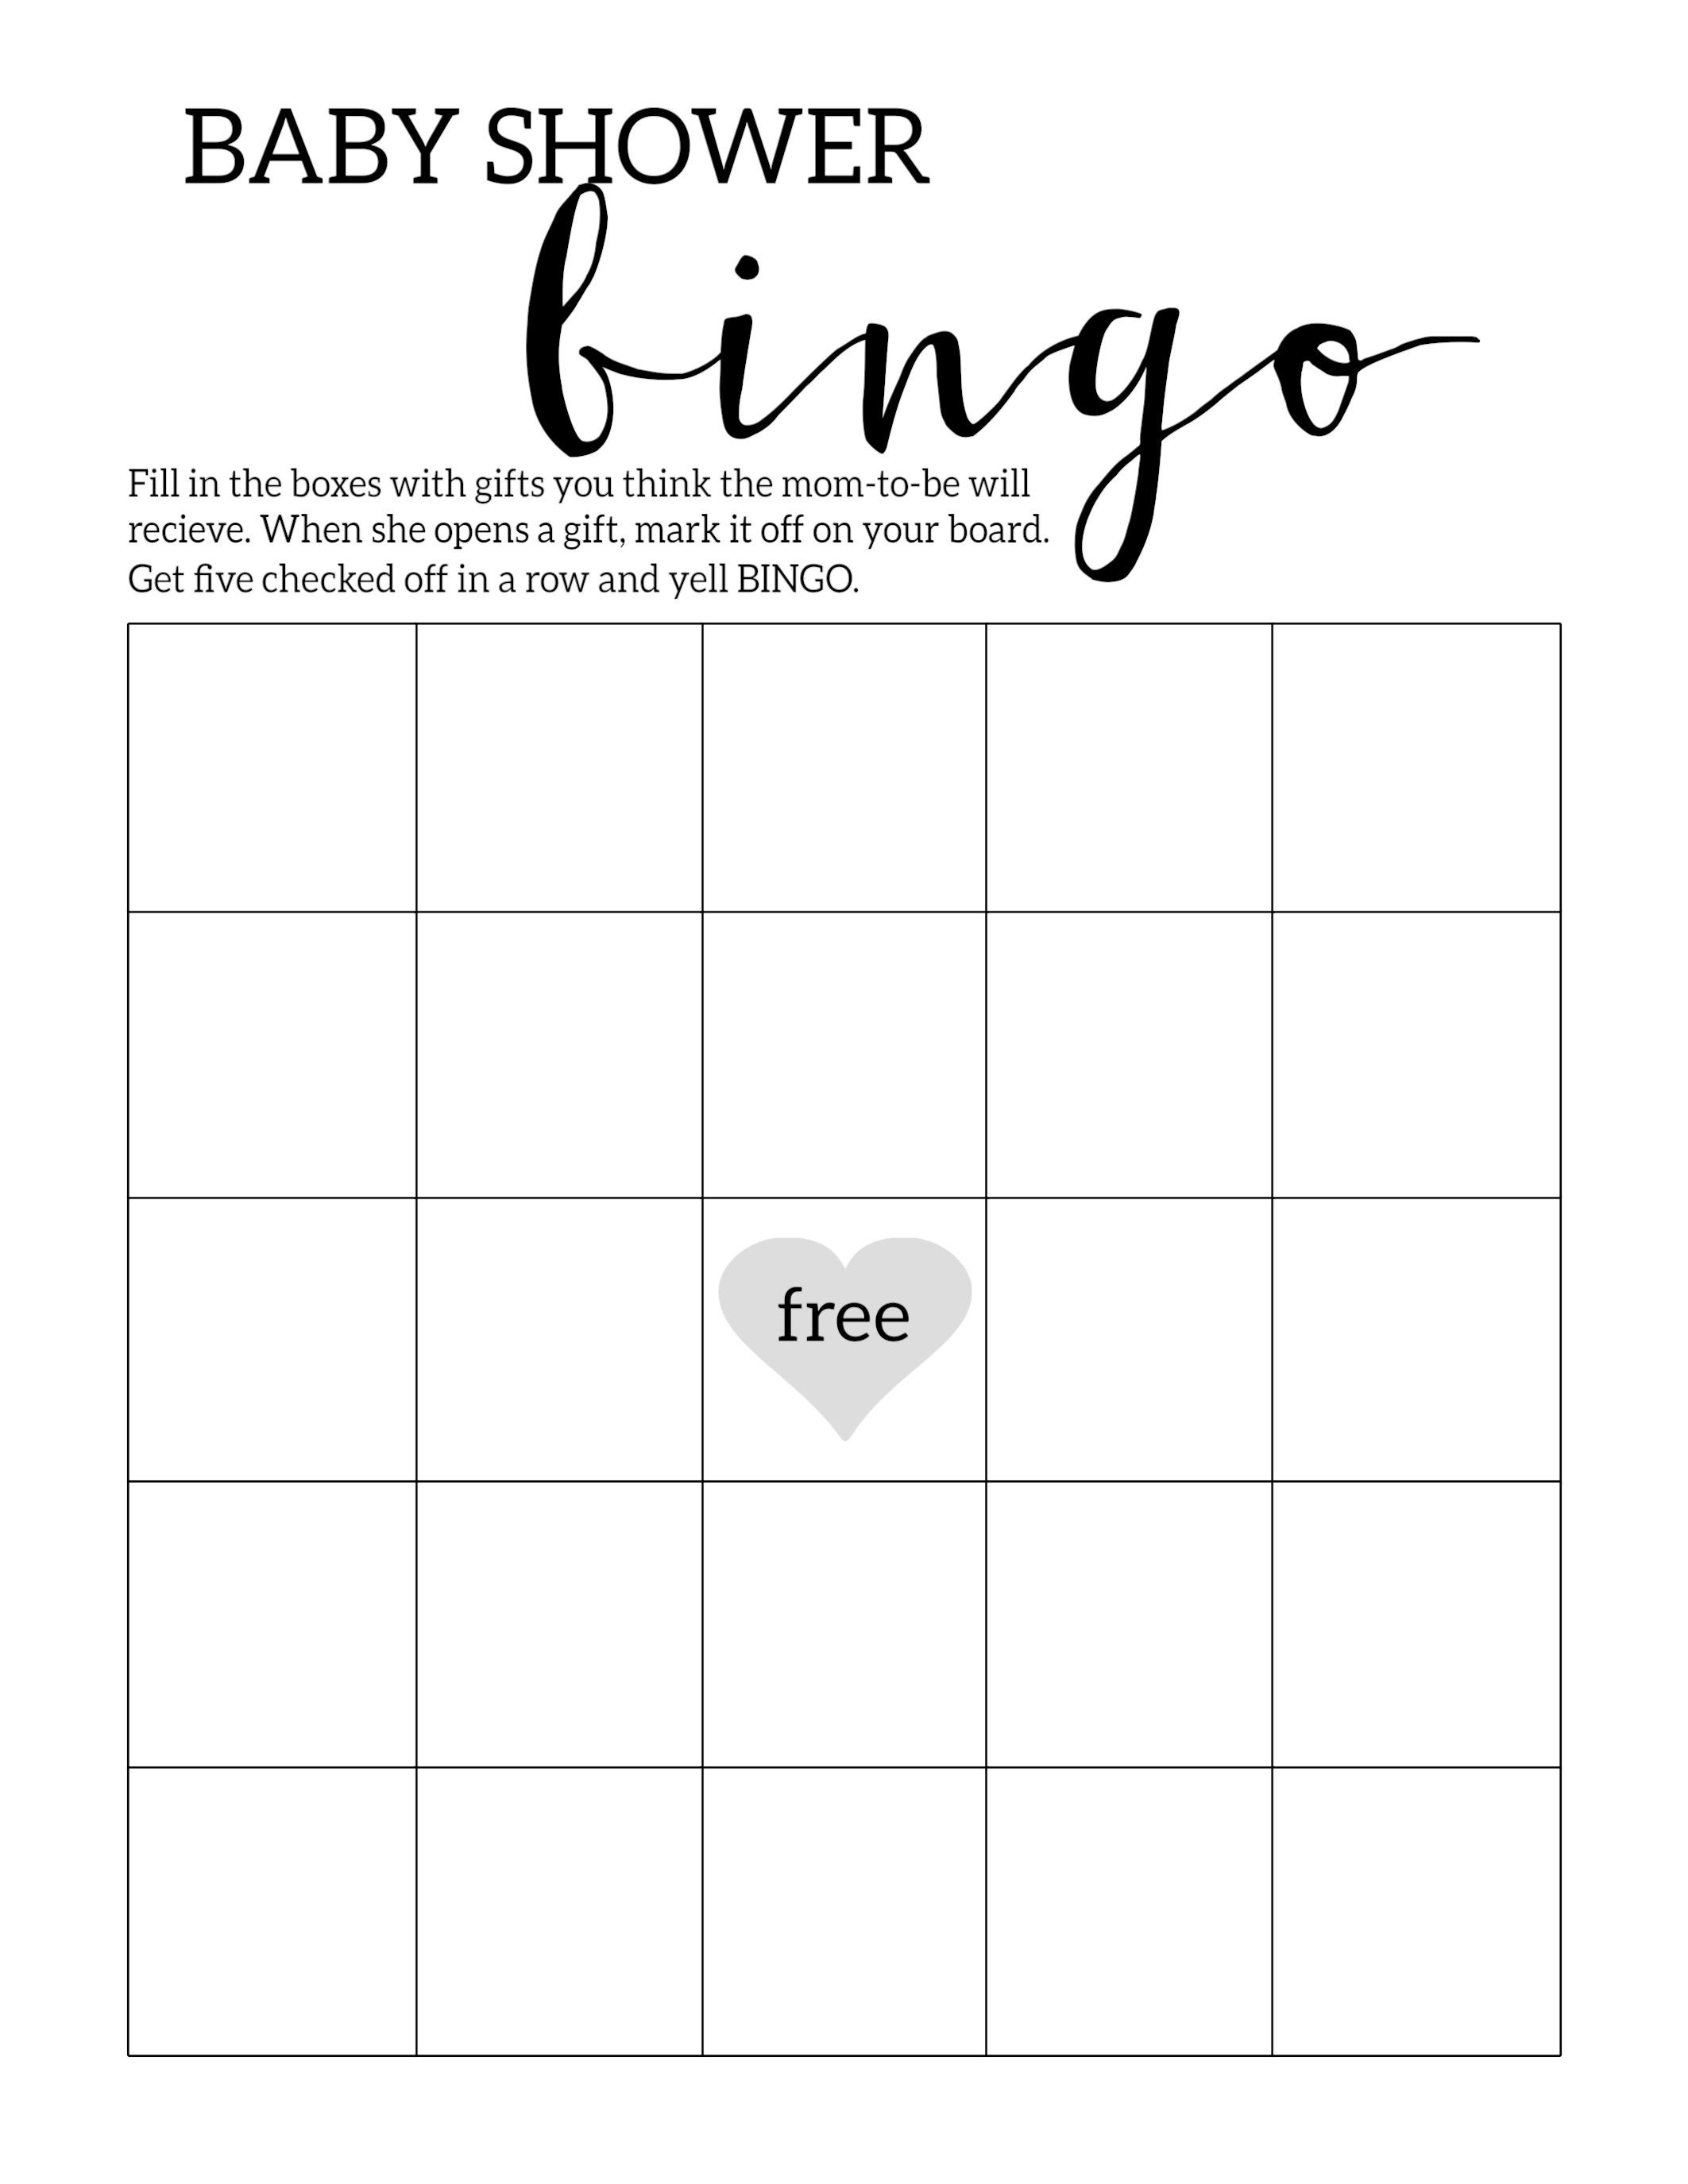 Baby Shower Bingo Printable Cards Template | Baby Shower | Baby - Free Printable Baby Shower Bingo